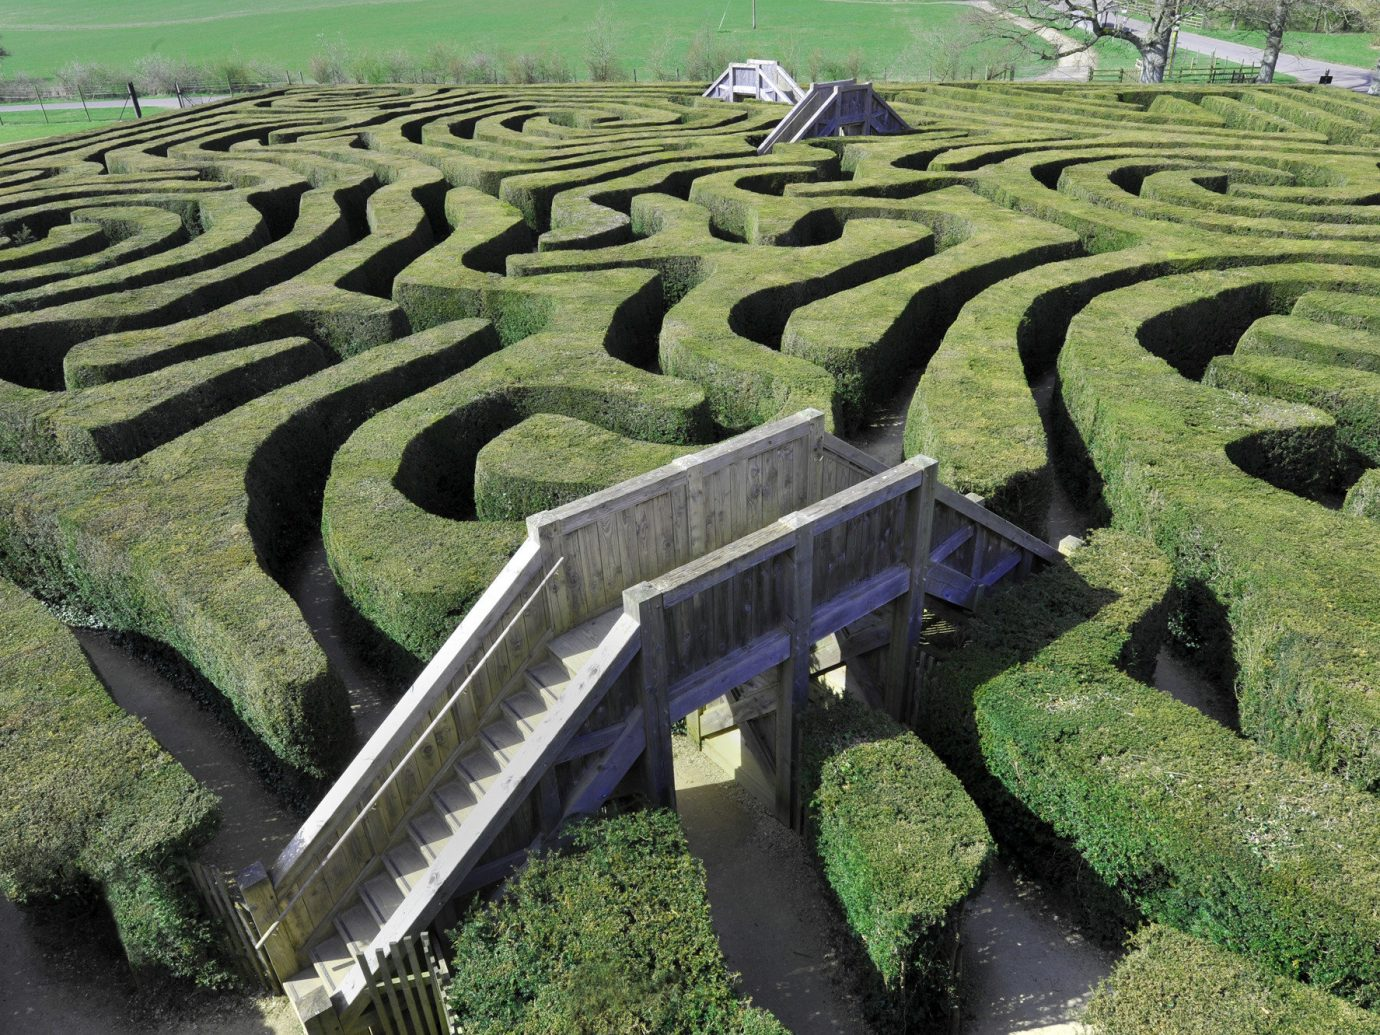 Trip Ideas grass outdoor ecosystem field Terrace landscape agriculture soil green plain aerial photography race track outdoor structure maze paddy field Garden day